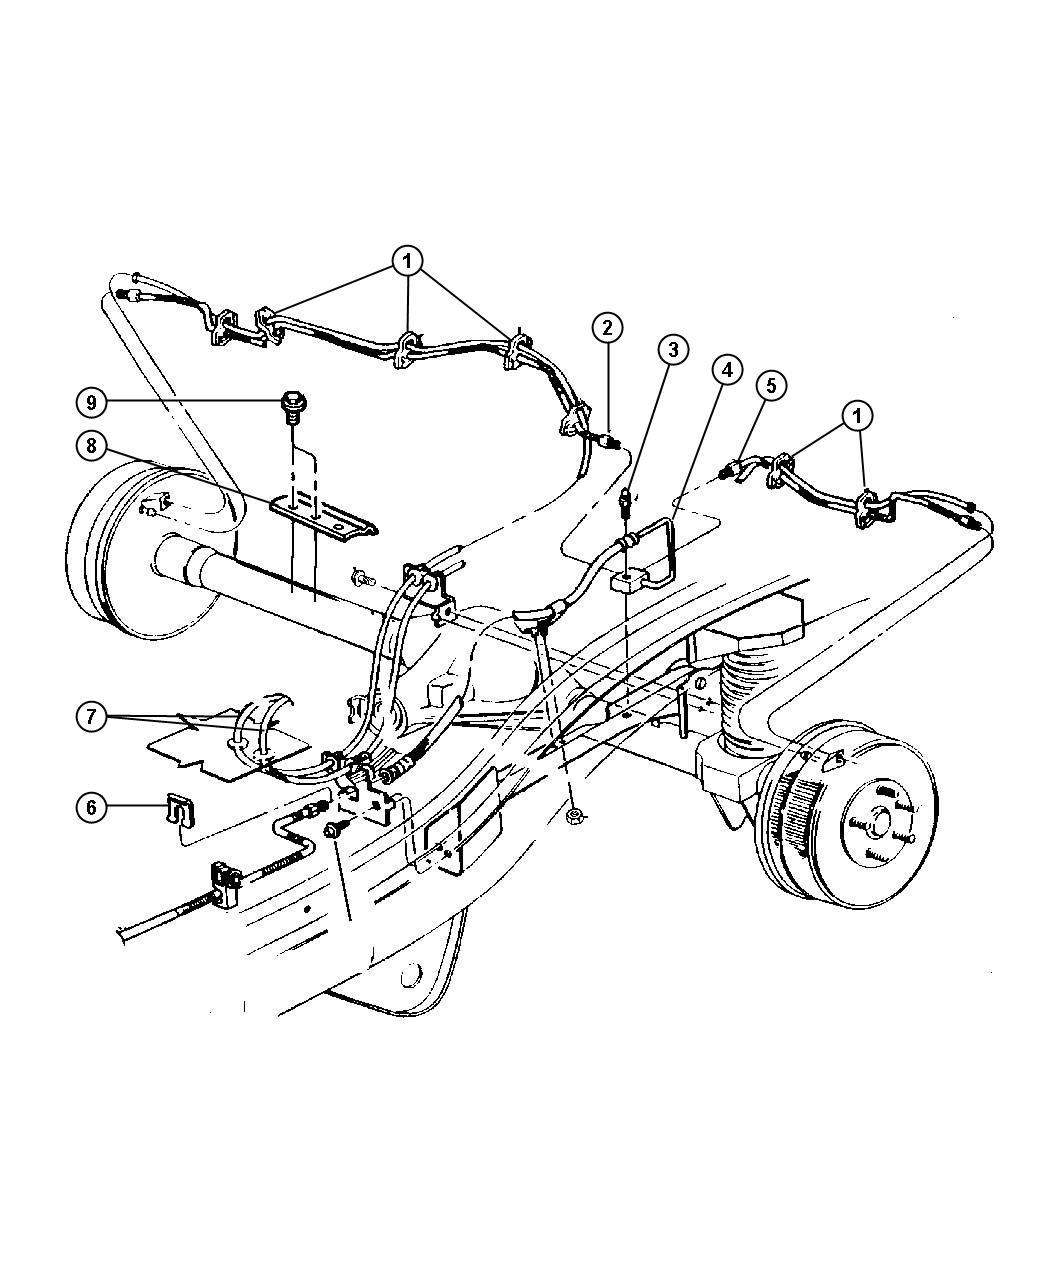 2001 Jeep Cherokee Rear Brake Diagram Real Wiring 2002 Grand Radio Dodge Ram Free Engine Image 1998 Starter Circuit